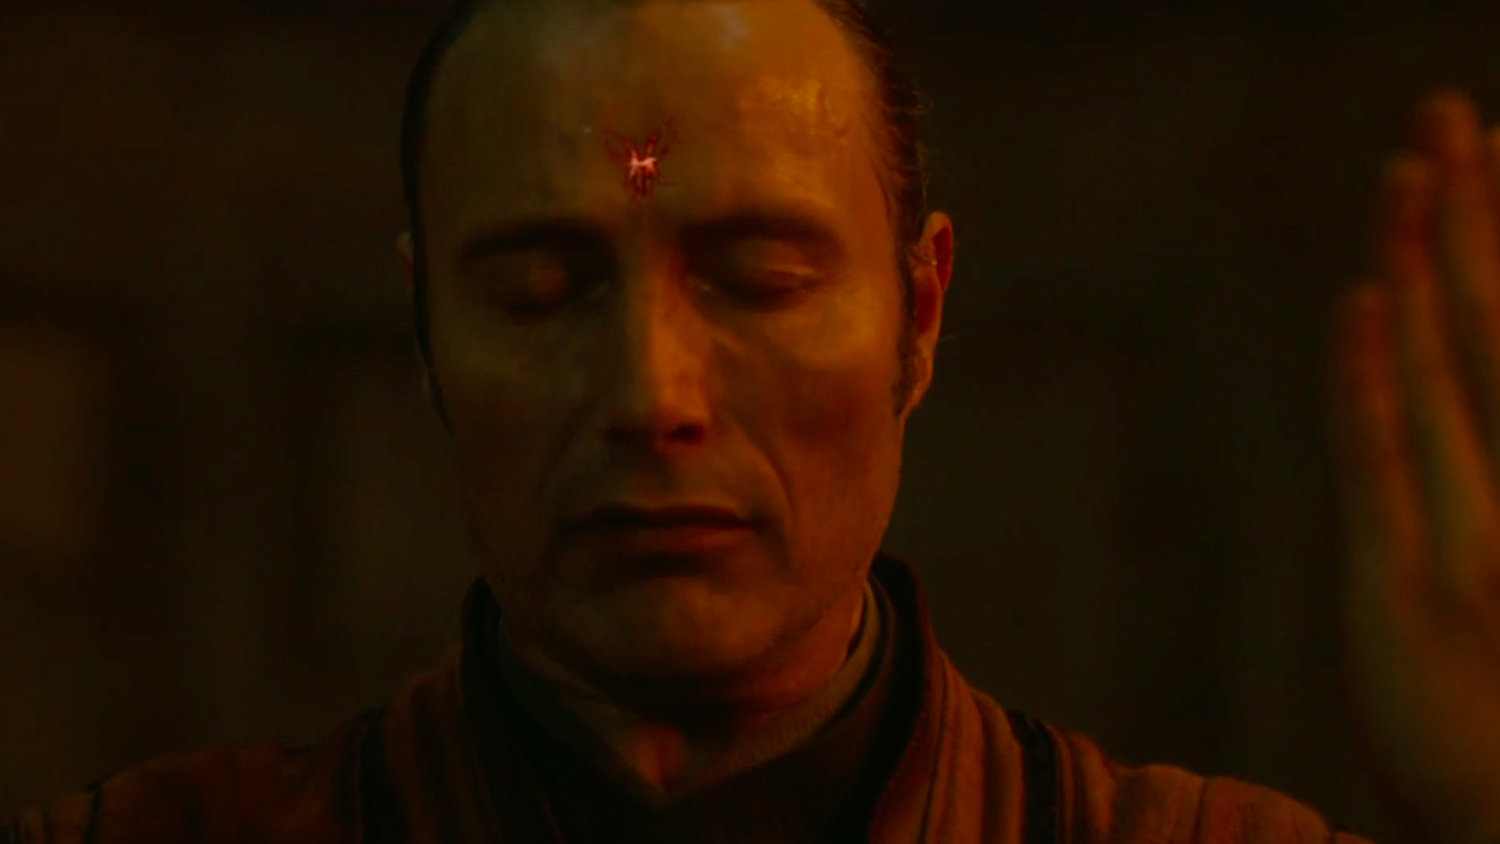 DOCTOR STRANGE Deleted Scene Shows Kaecilius and His Followers Being Marked by Dormammu